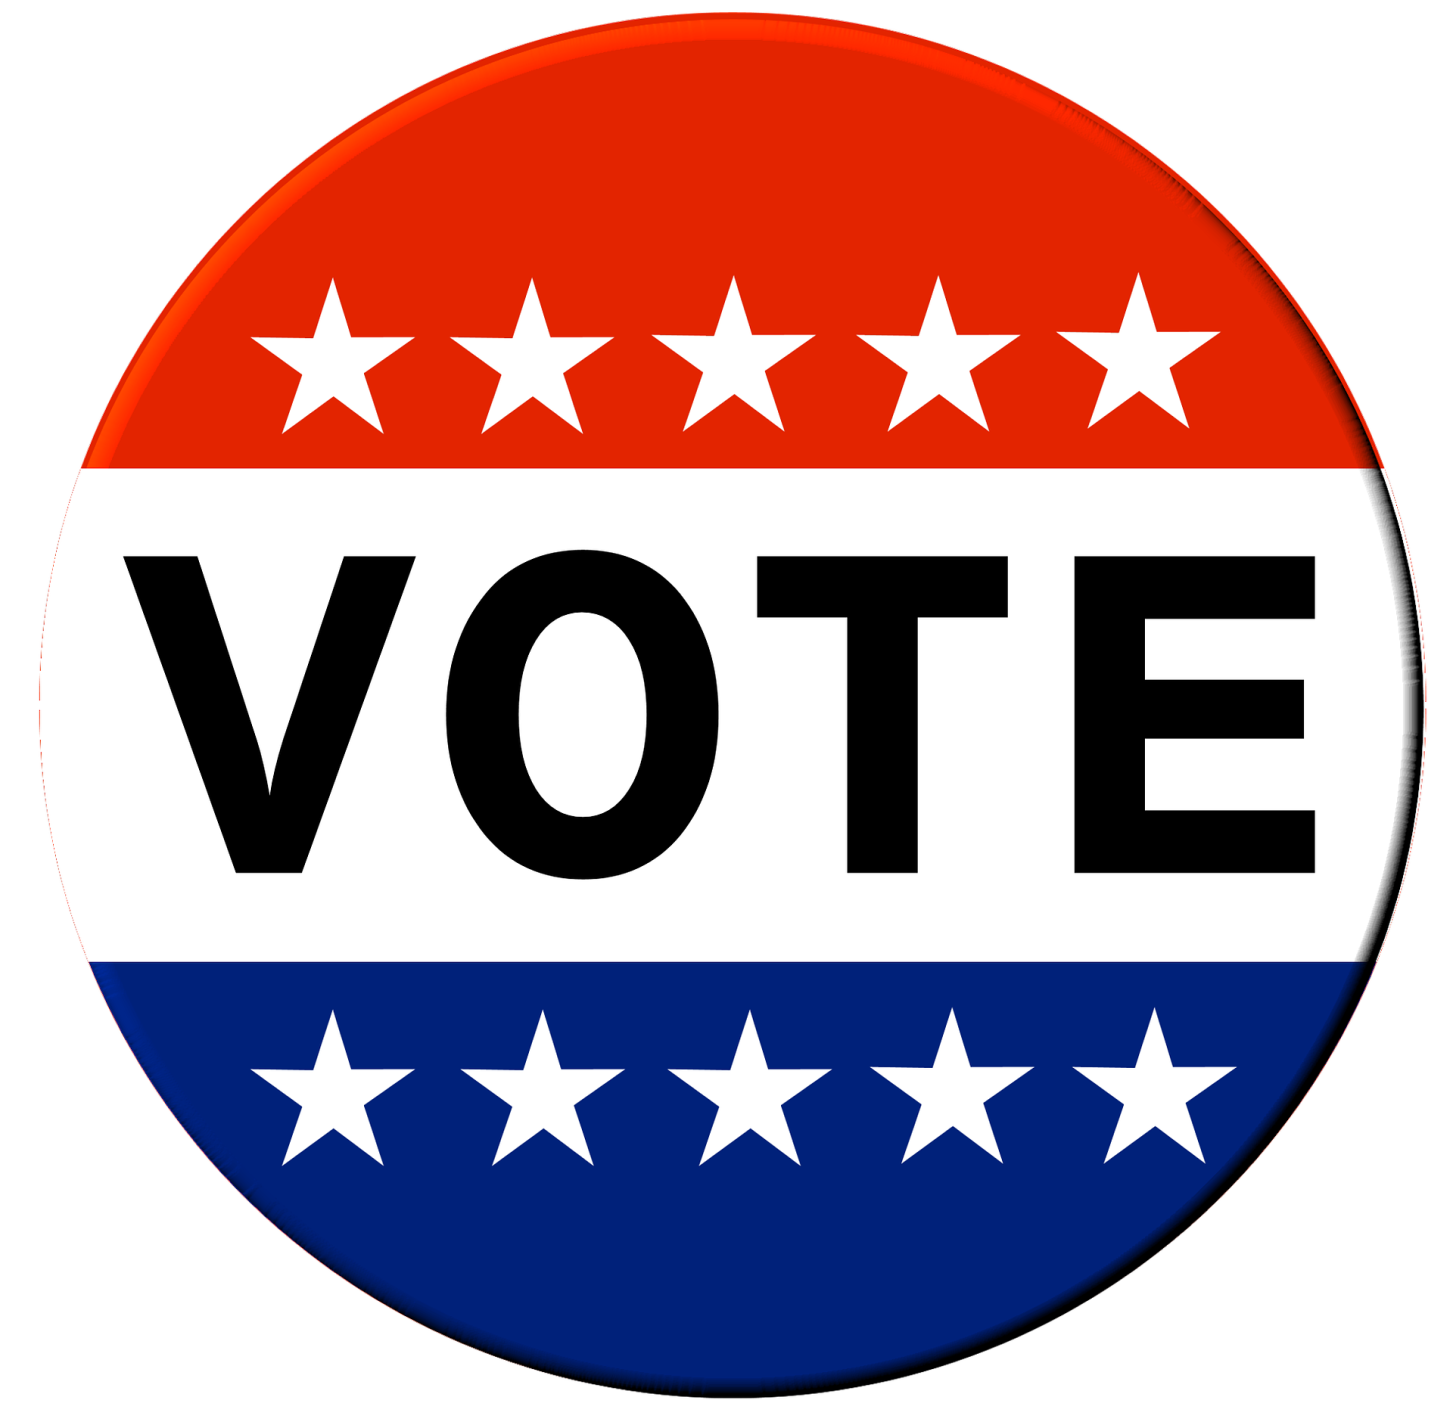 early voting for city school elections begins monday news rh panolawatchman com election day clipart black and white election day clipart 2016